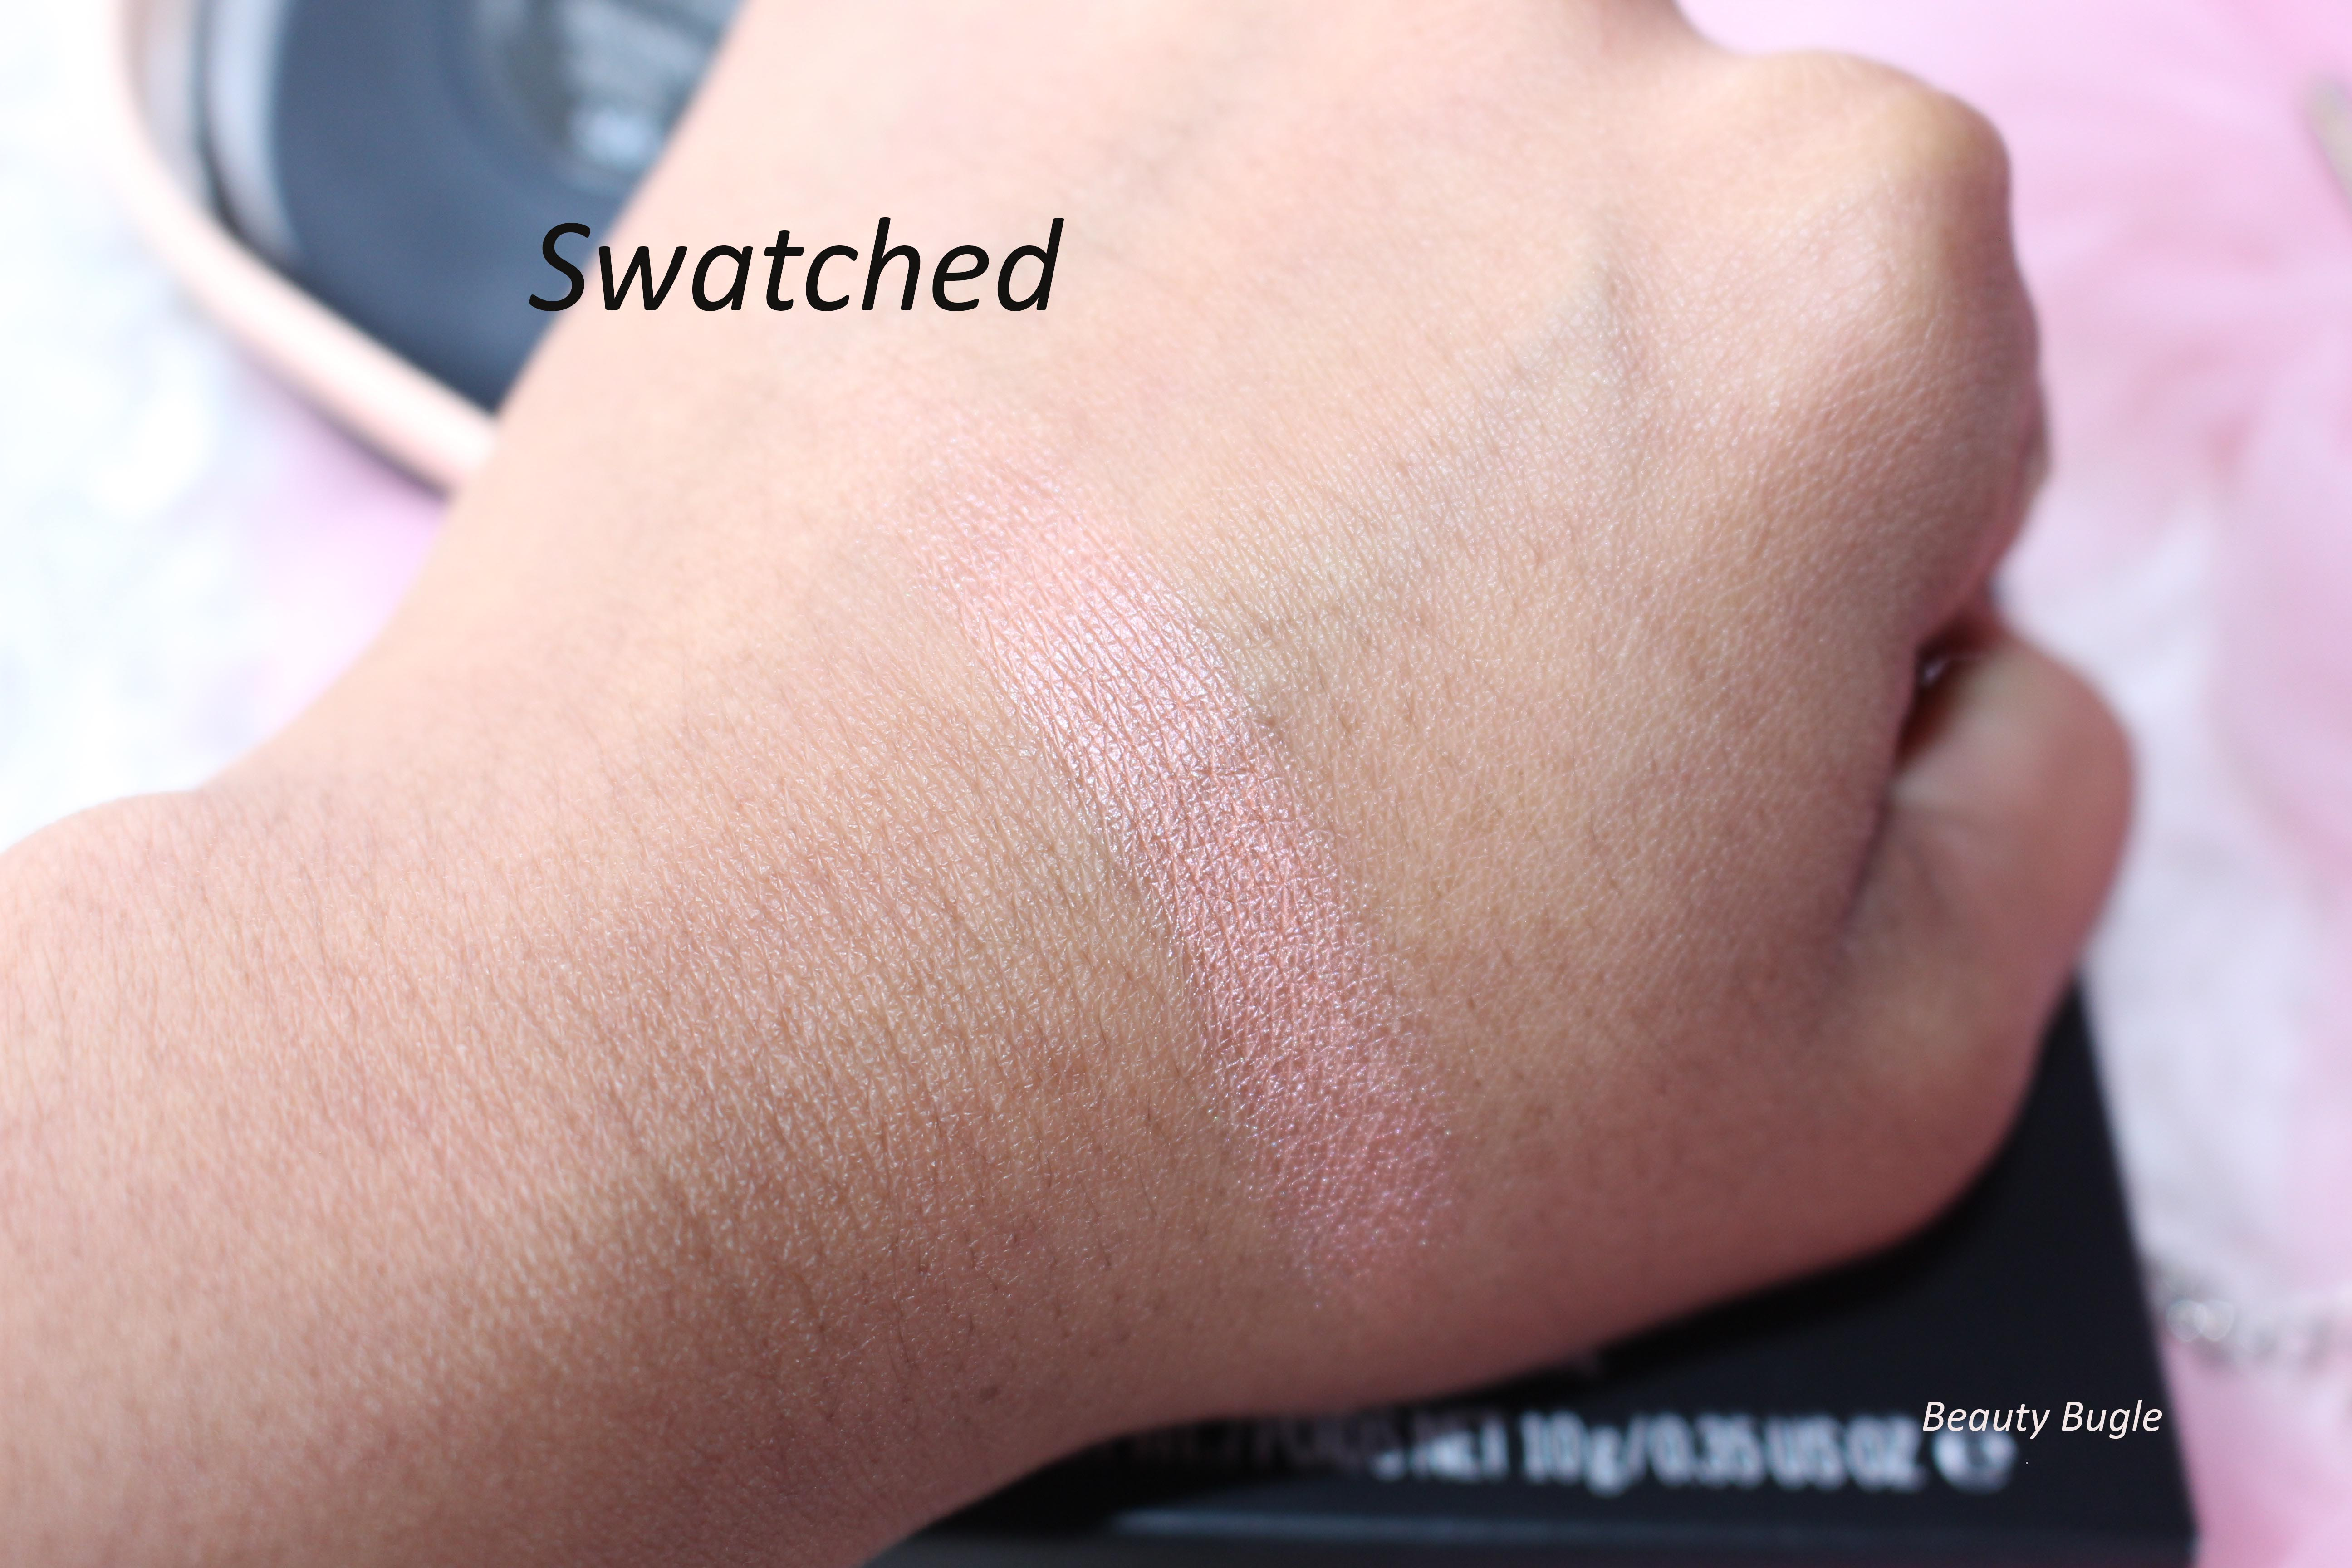 macperalsunshineswatched